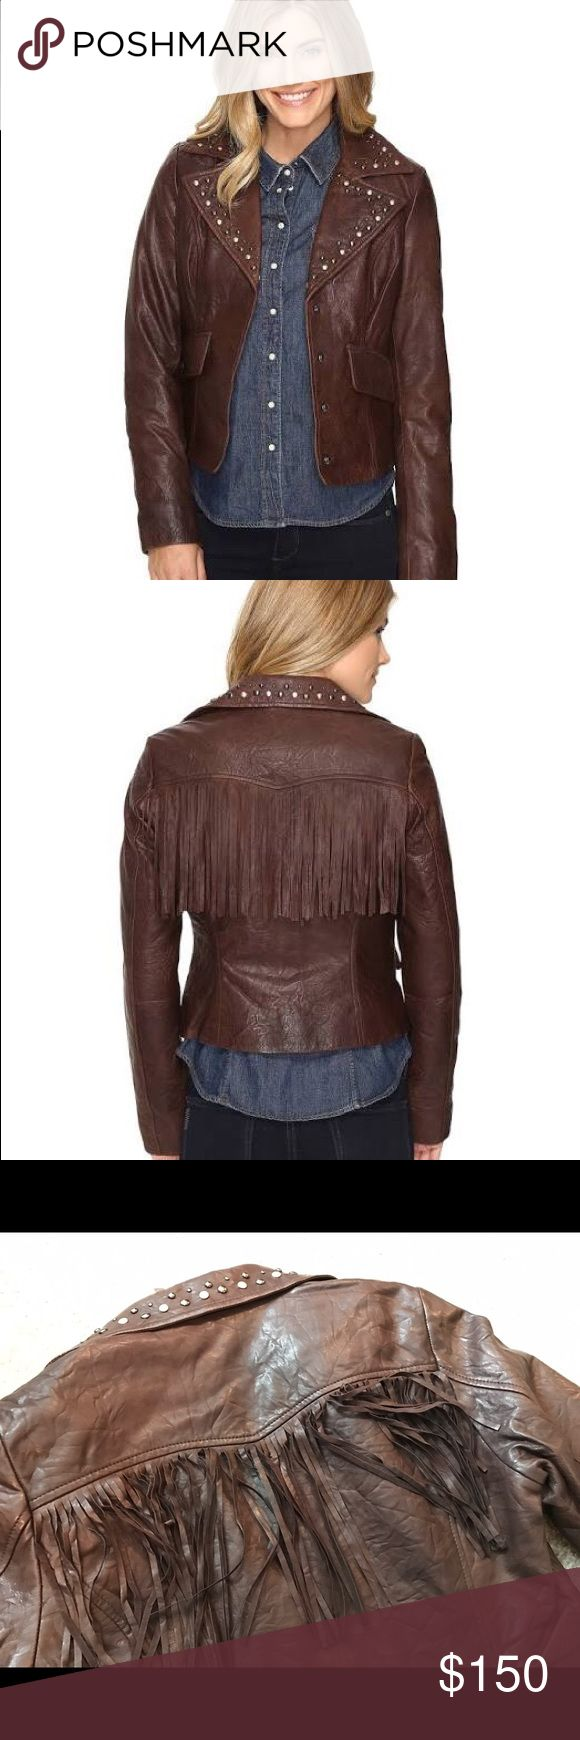 Stetson Crinkled Leather Jacket w/ Nailheads Tailored leather jacket features a buttery-soft distressed look with studded detail along collar and hanging fringe across back. Princess seams offer a feminine silhouette. Four-snap button front closure. Oversized notched lapel. Multi-toned metallic beading. Long sleeve coverage. Fully lined. Flap hand pockets. Western point back yoke. Curved cropped hem. 100% leather; Lining: 100% polyester. Stetson Jackets & Coats